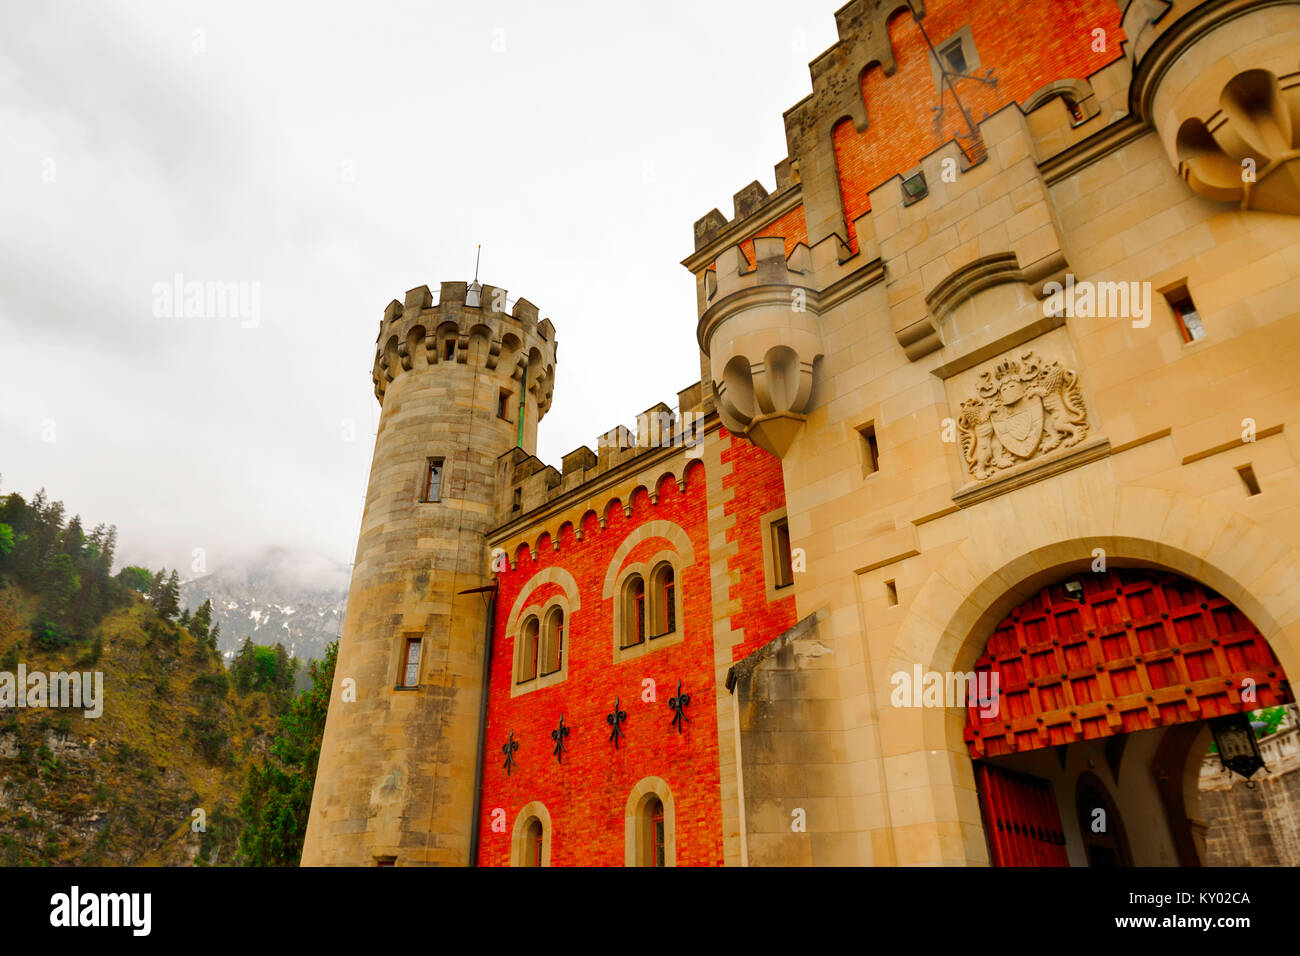 Hohenschwangau, Germany- May 30, 2016:Neuschwanstein Castle is visited by more than 1.3 million people annually, - Stock Image